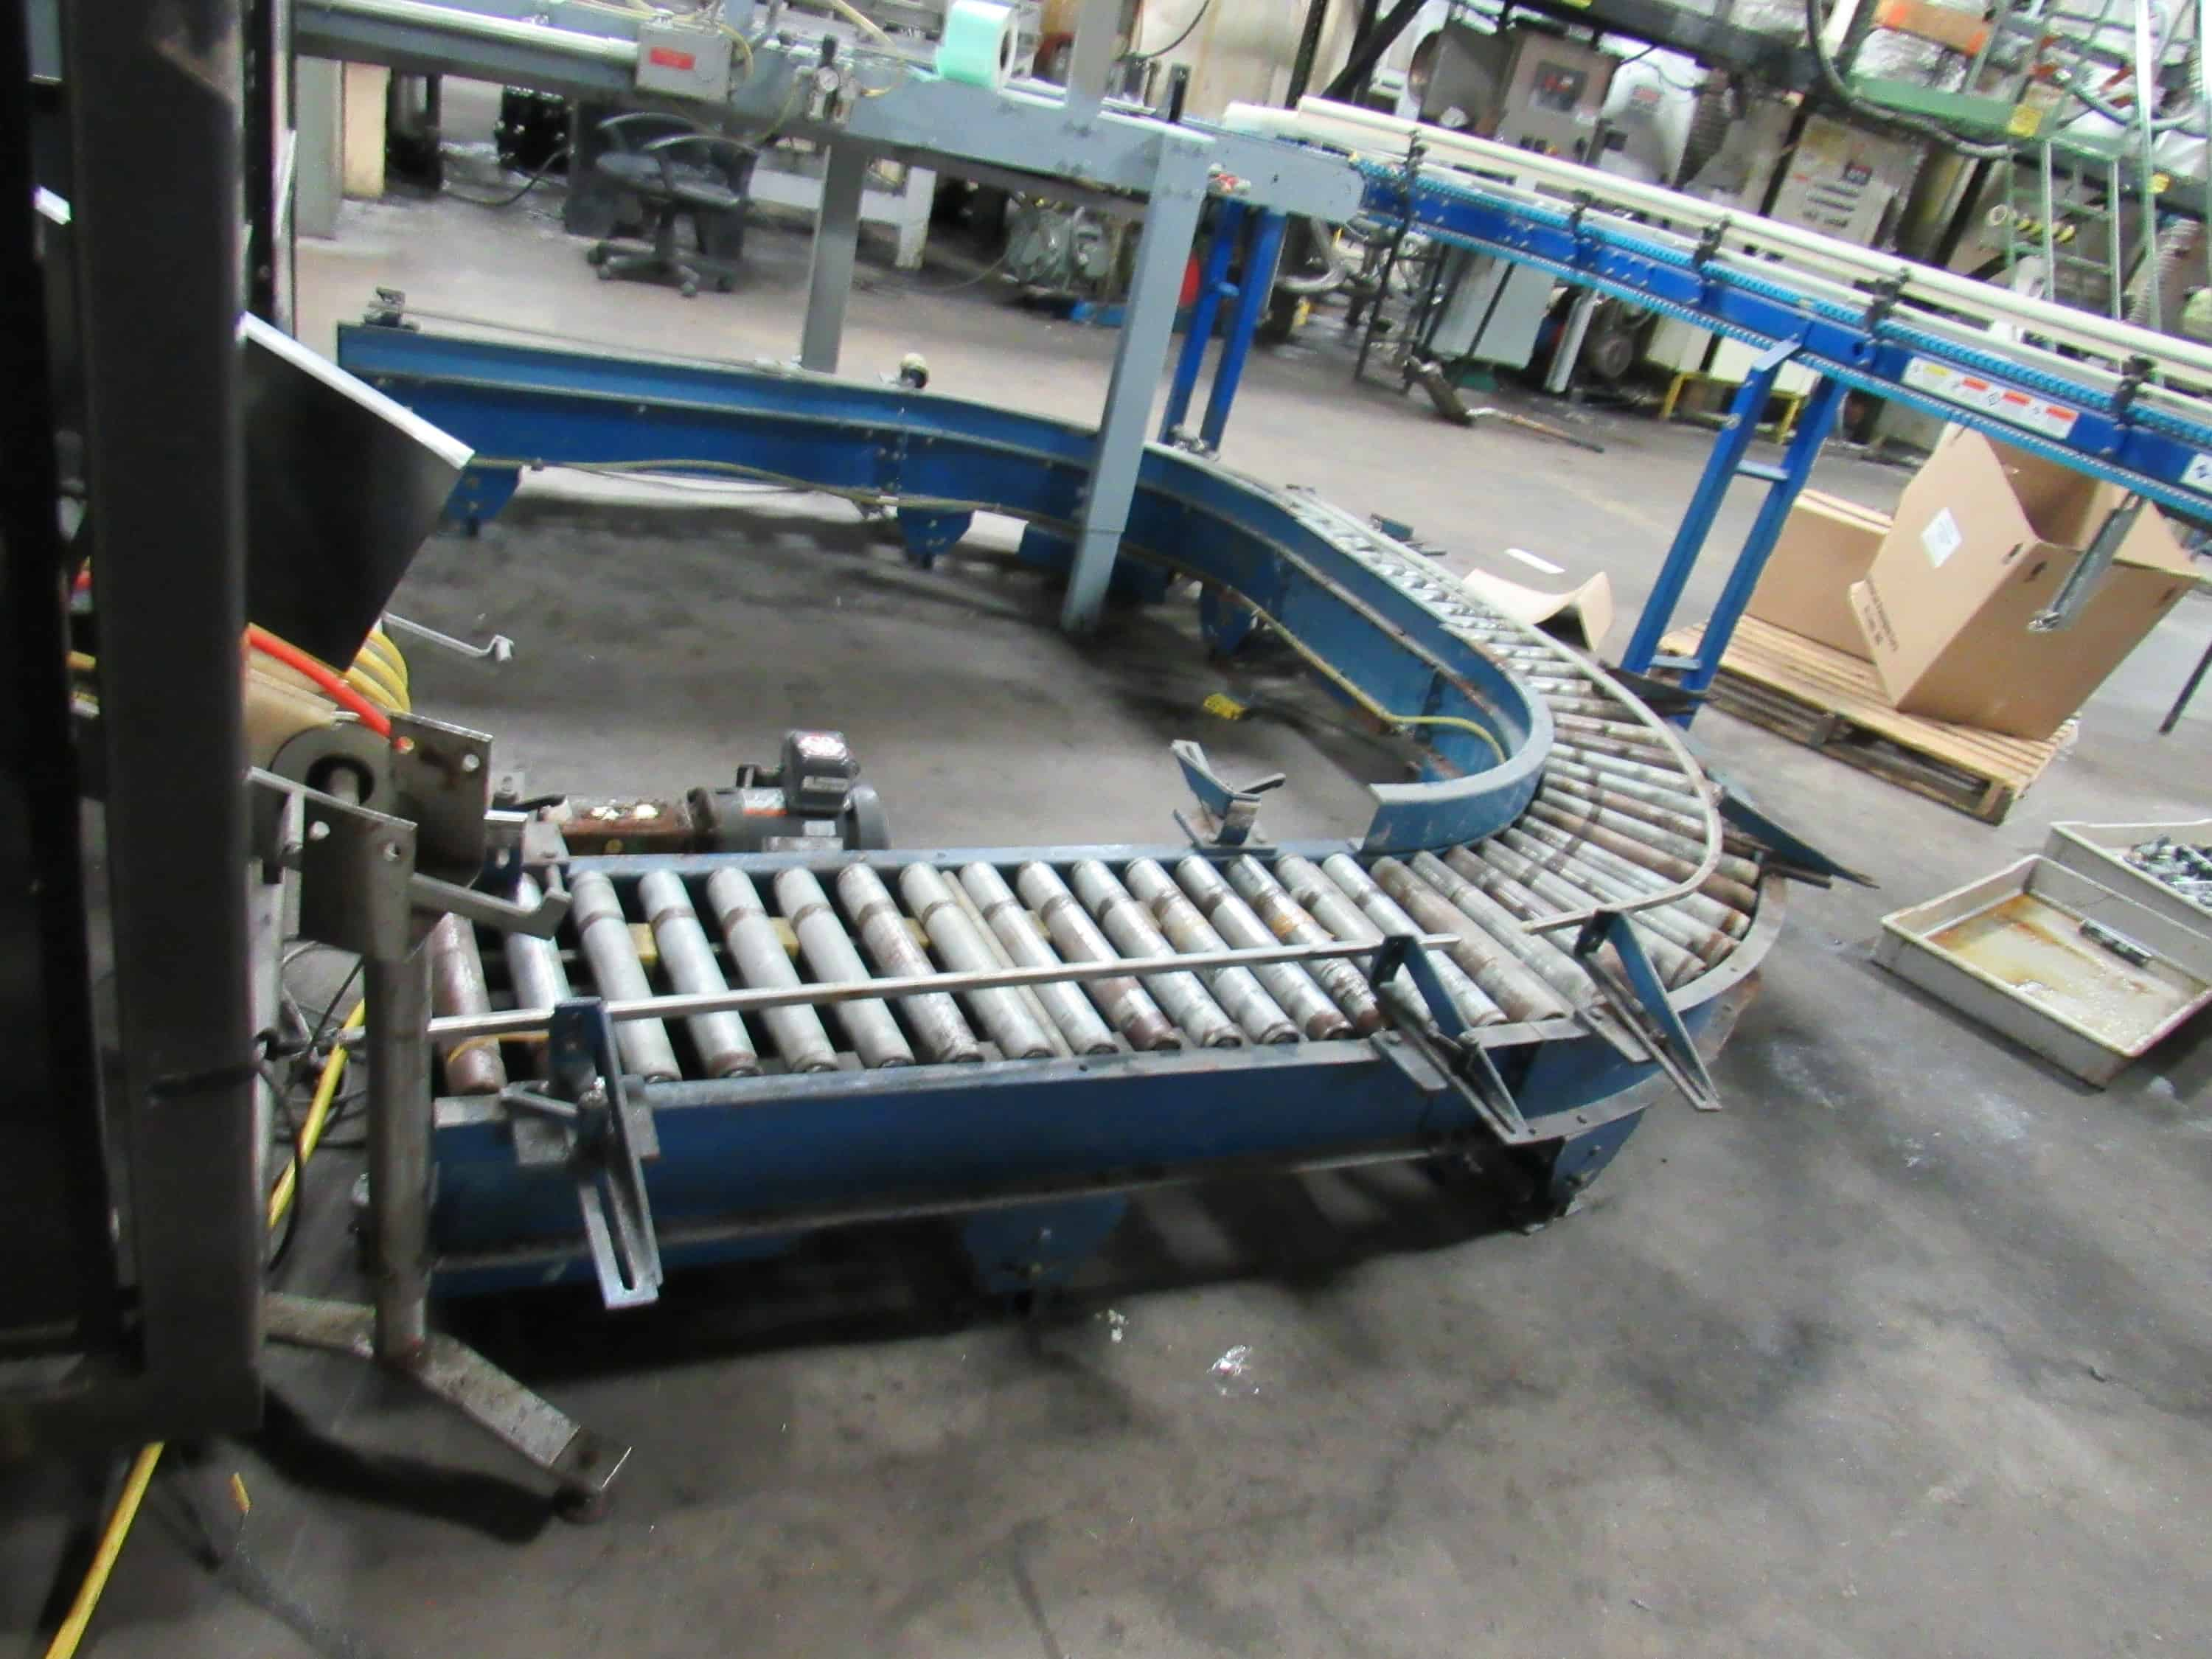 Climax Drop Case Packer with a large number of change parts – chutes, spacers and a U Shape powered roller conveyor to deliver boxes on the lower conveyor. Can adjust from 2 to 6 lanes with an air operated lane selector.  Flexible for high speed packaging of all types bottles.  It was originally used for packaging various shampoo bottles, we have used for packaging 8 OZ biobased lubricants.  It will require a flatbed truck to ship; and requires $250 loading fee as we will need to contact the loading (Located in Iowa)***EUSA***